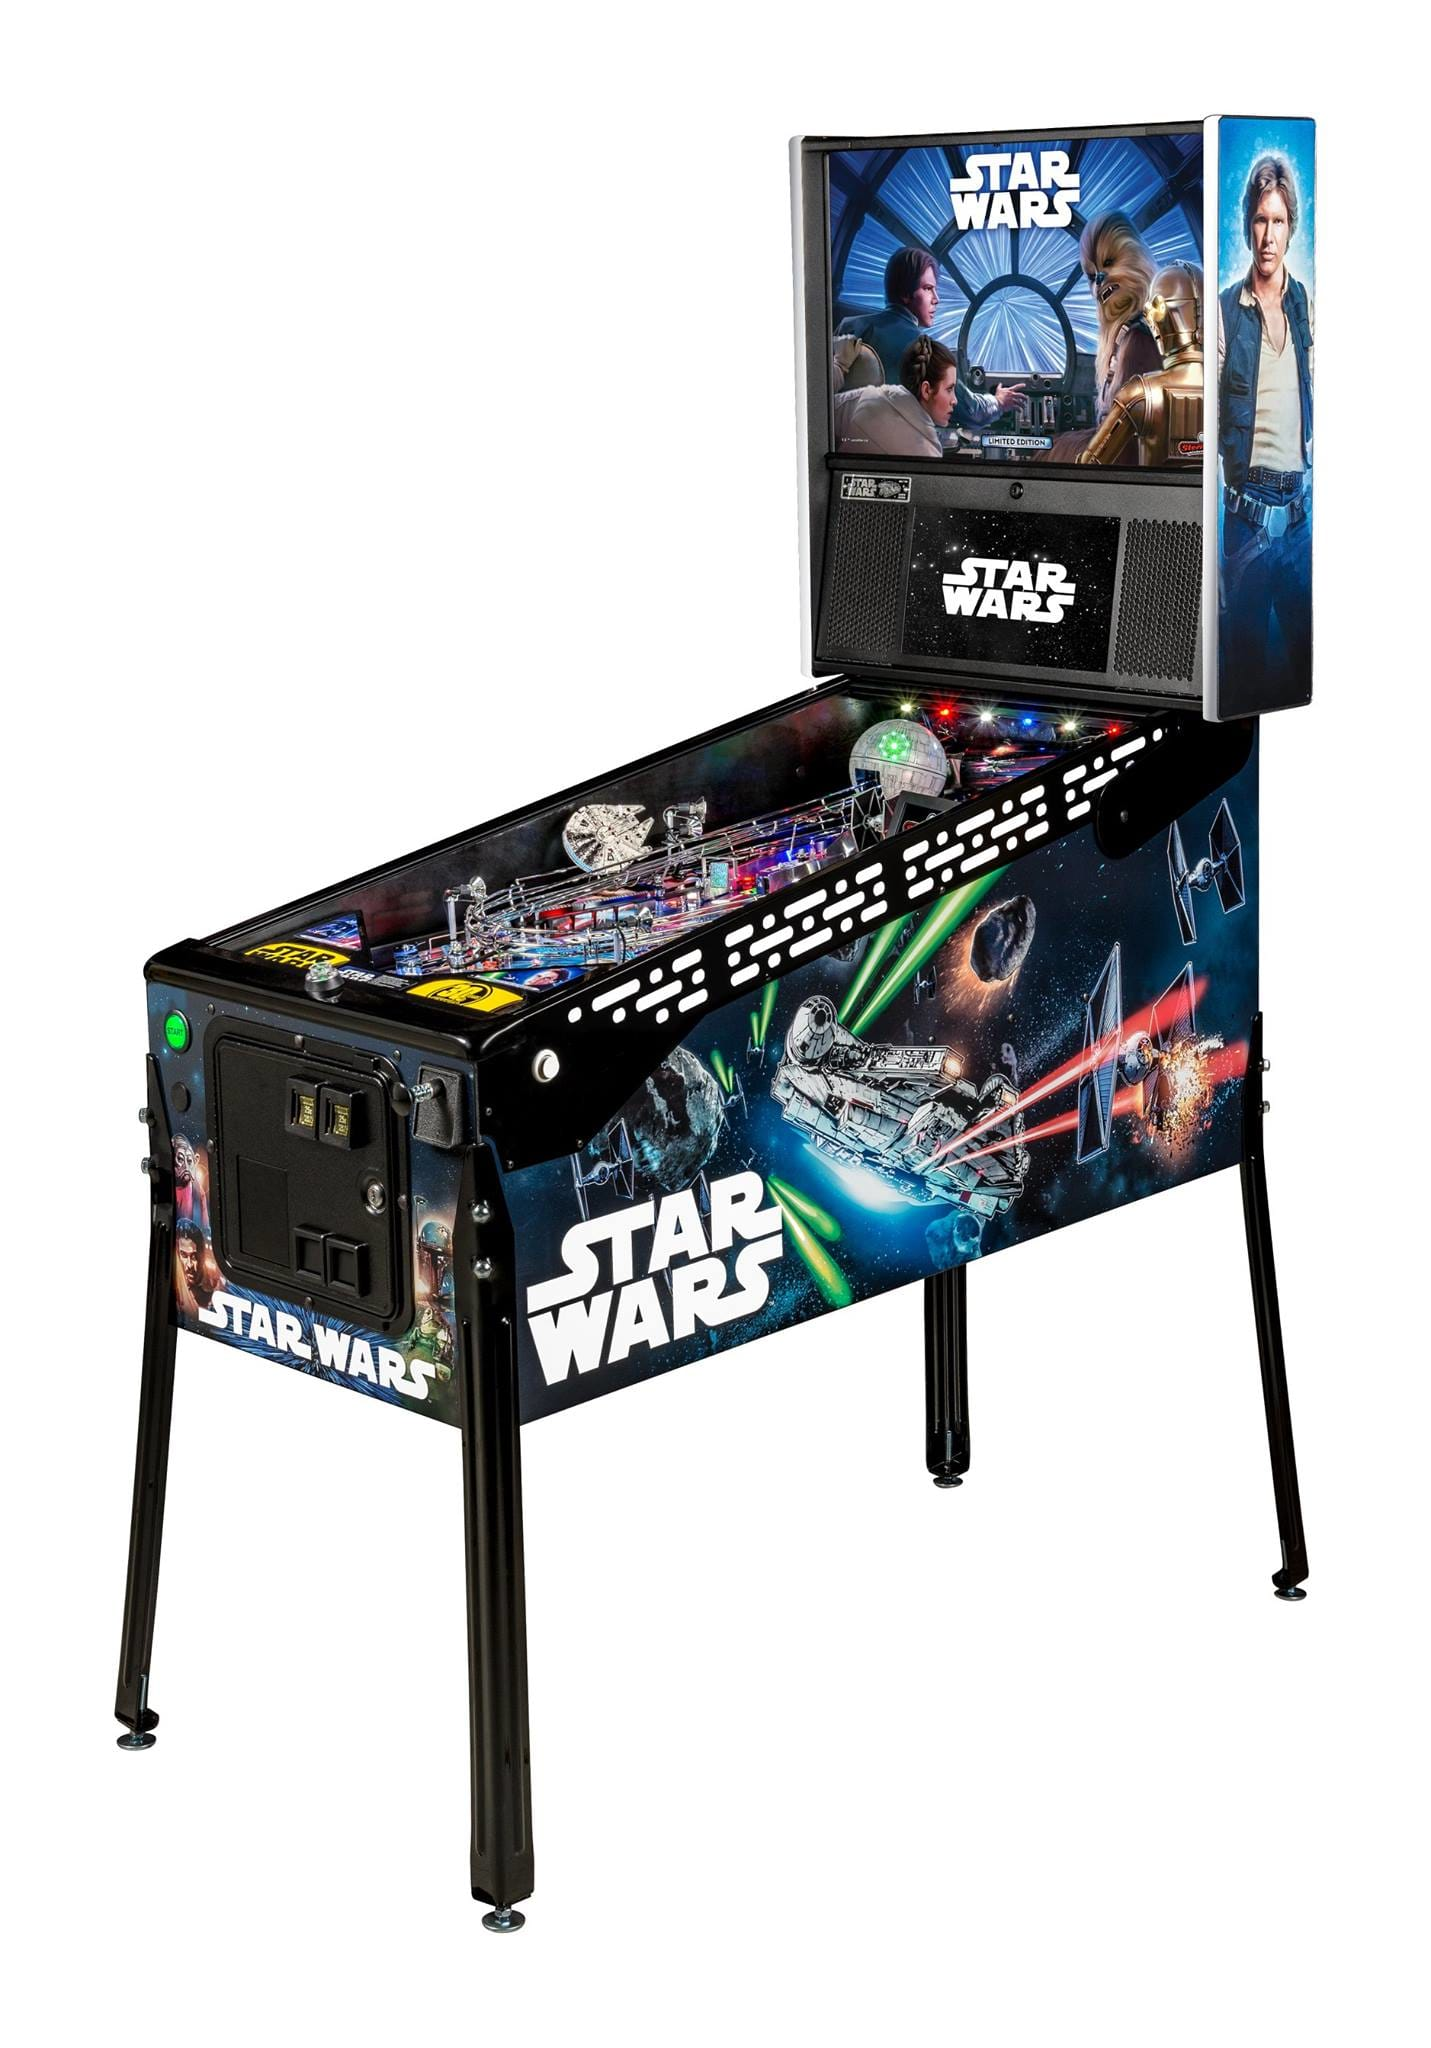 An image of Star Wars LE Pinball Machine